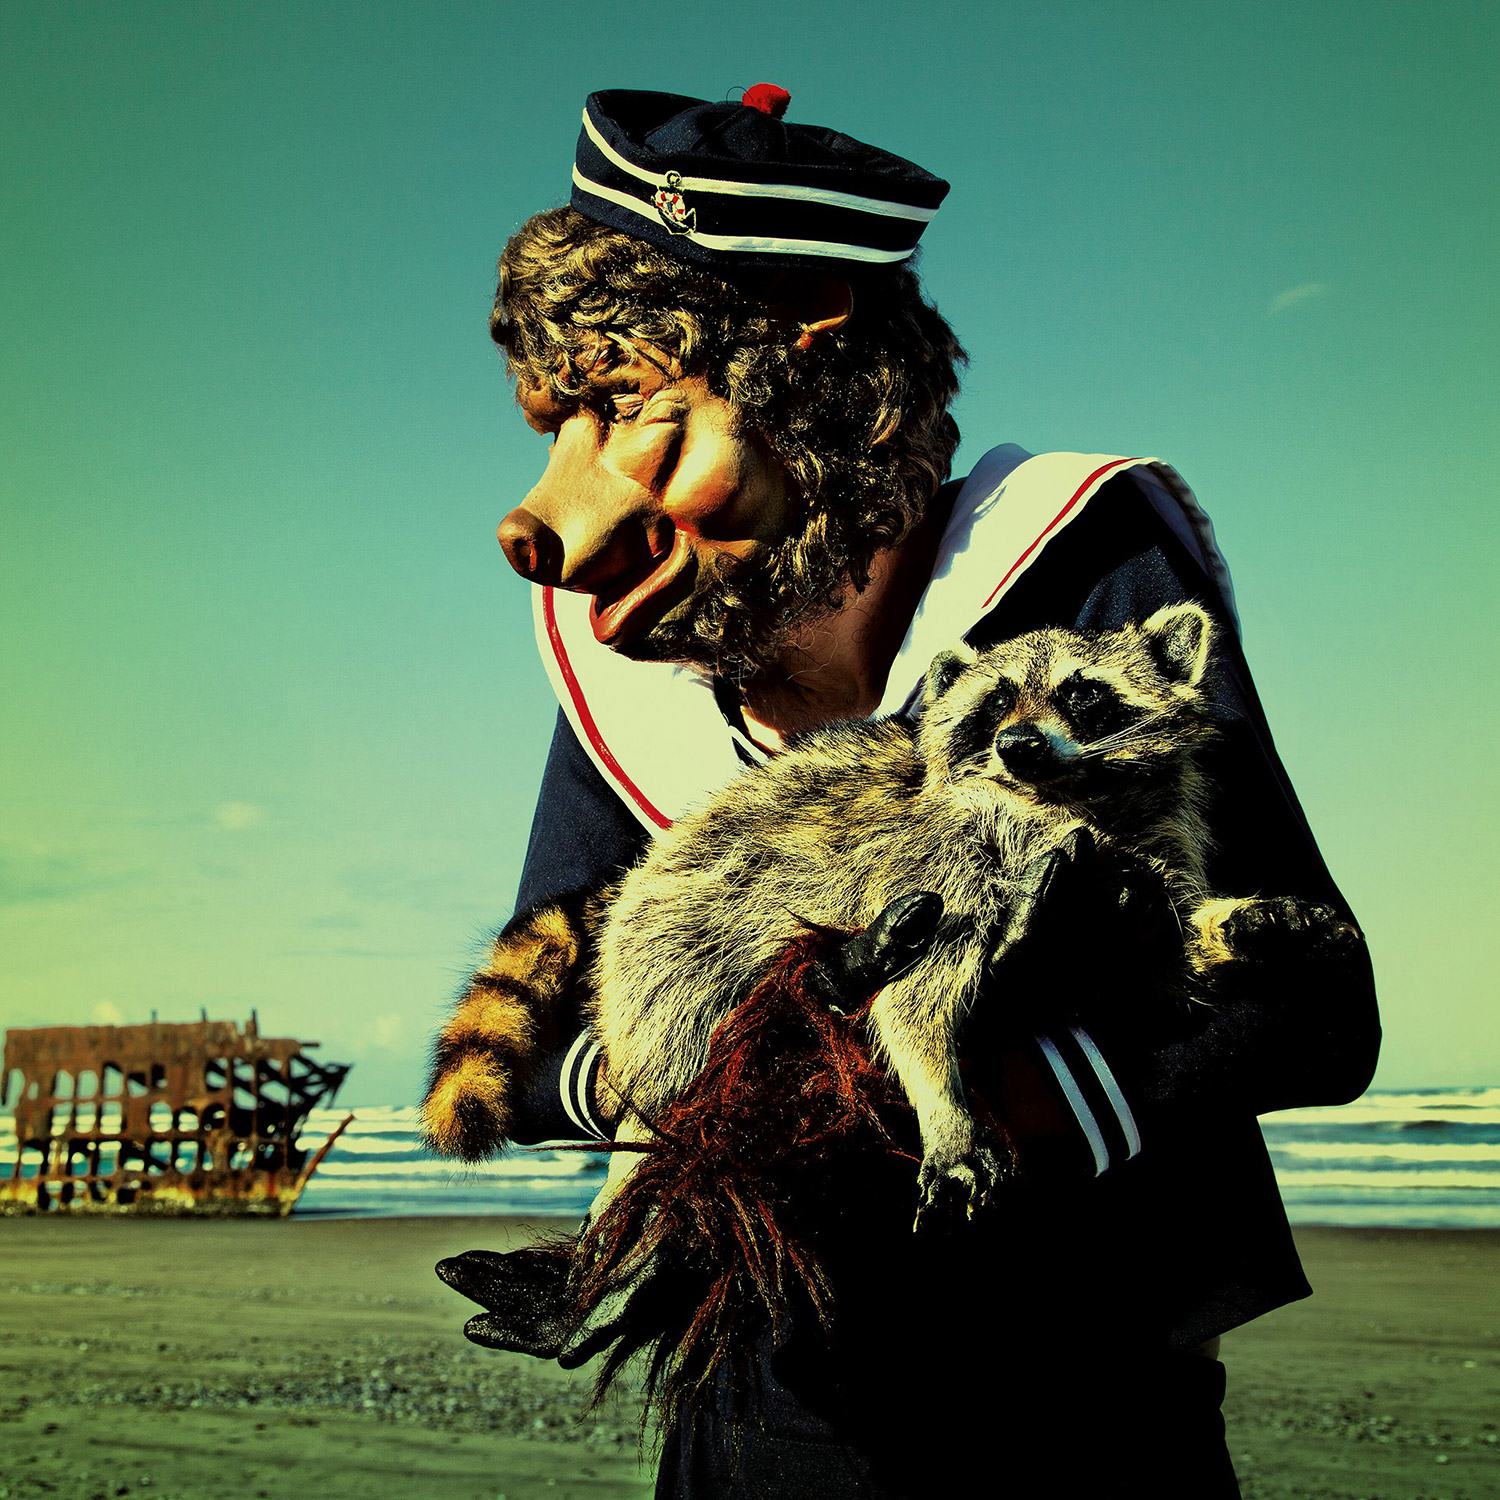 Mothmeister - masked figure with raccoon